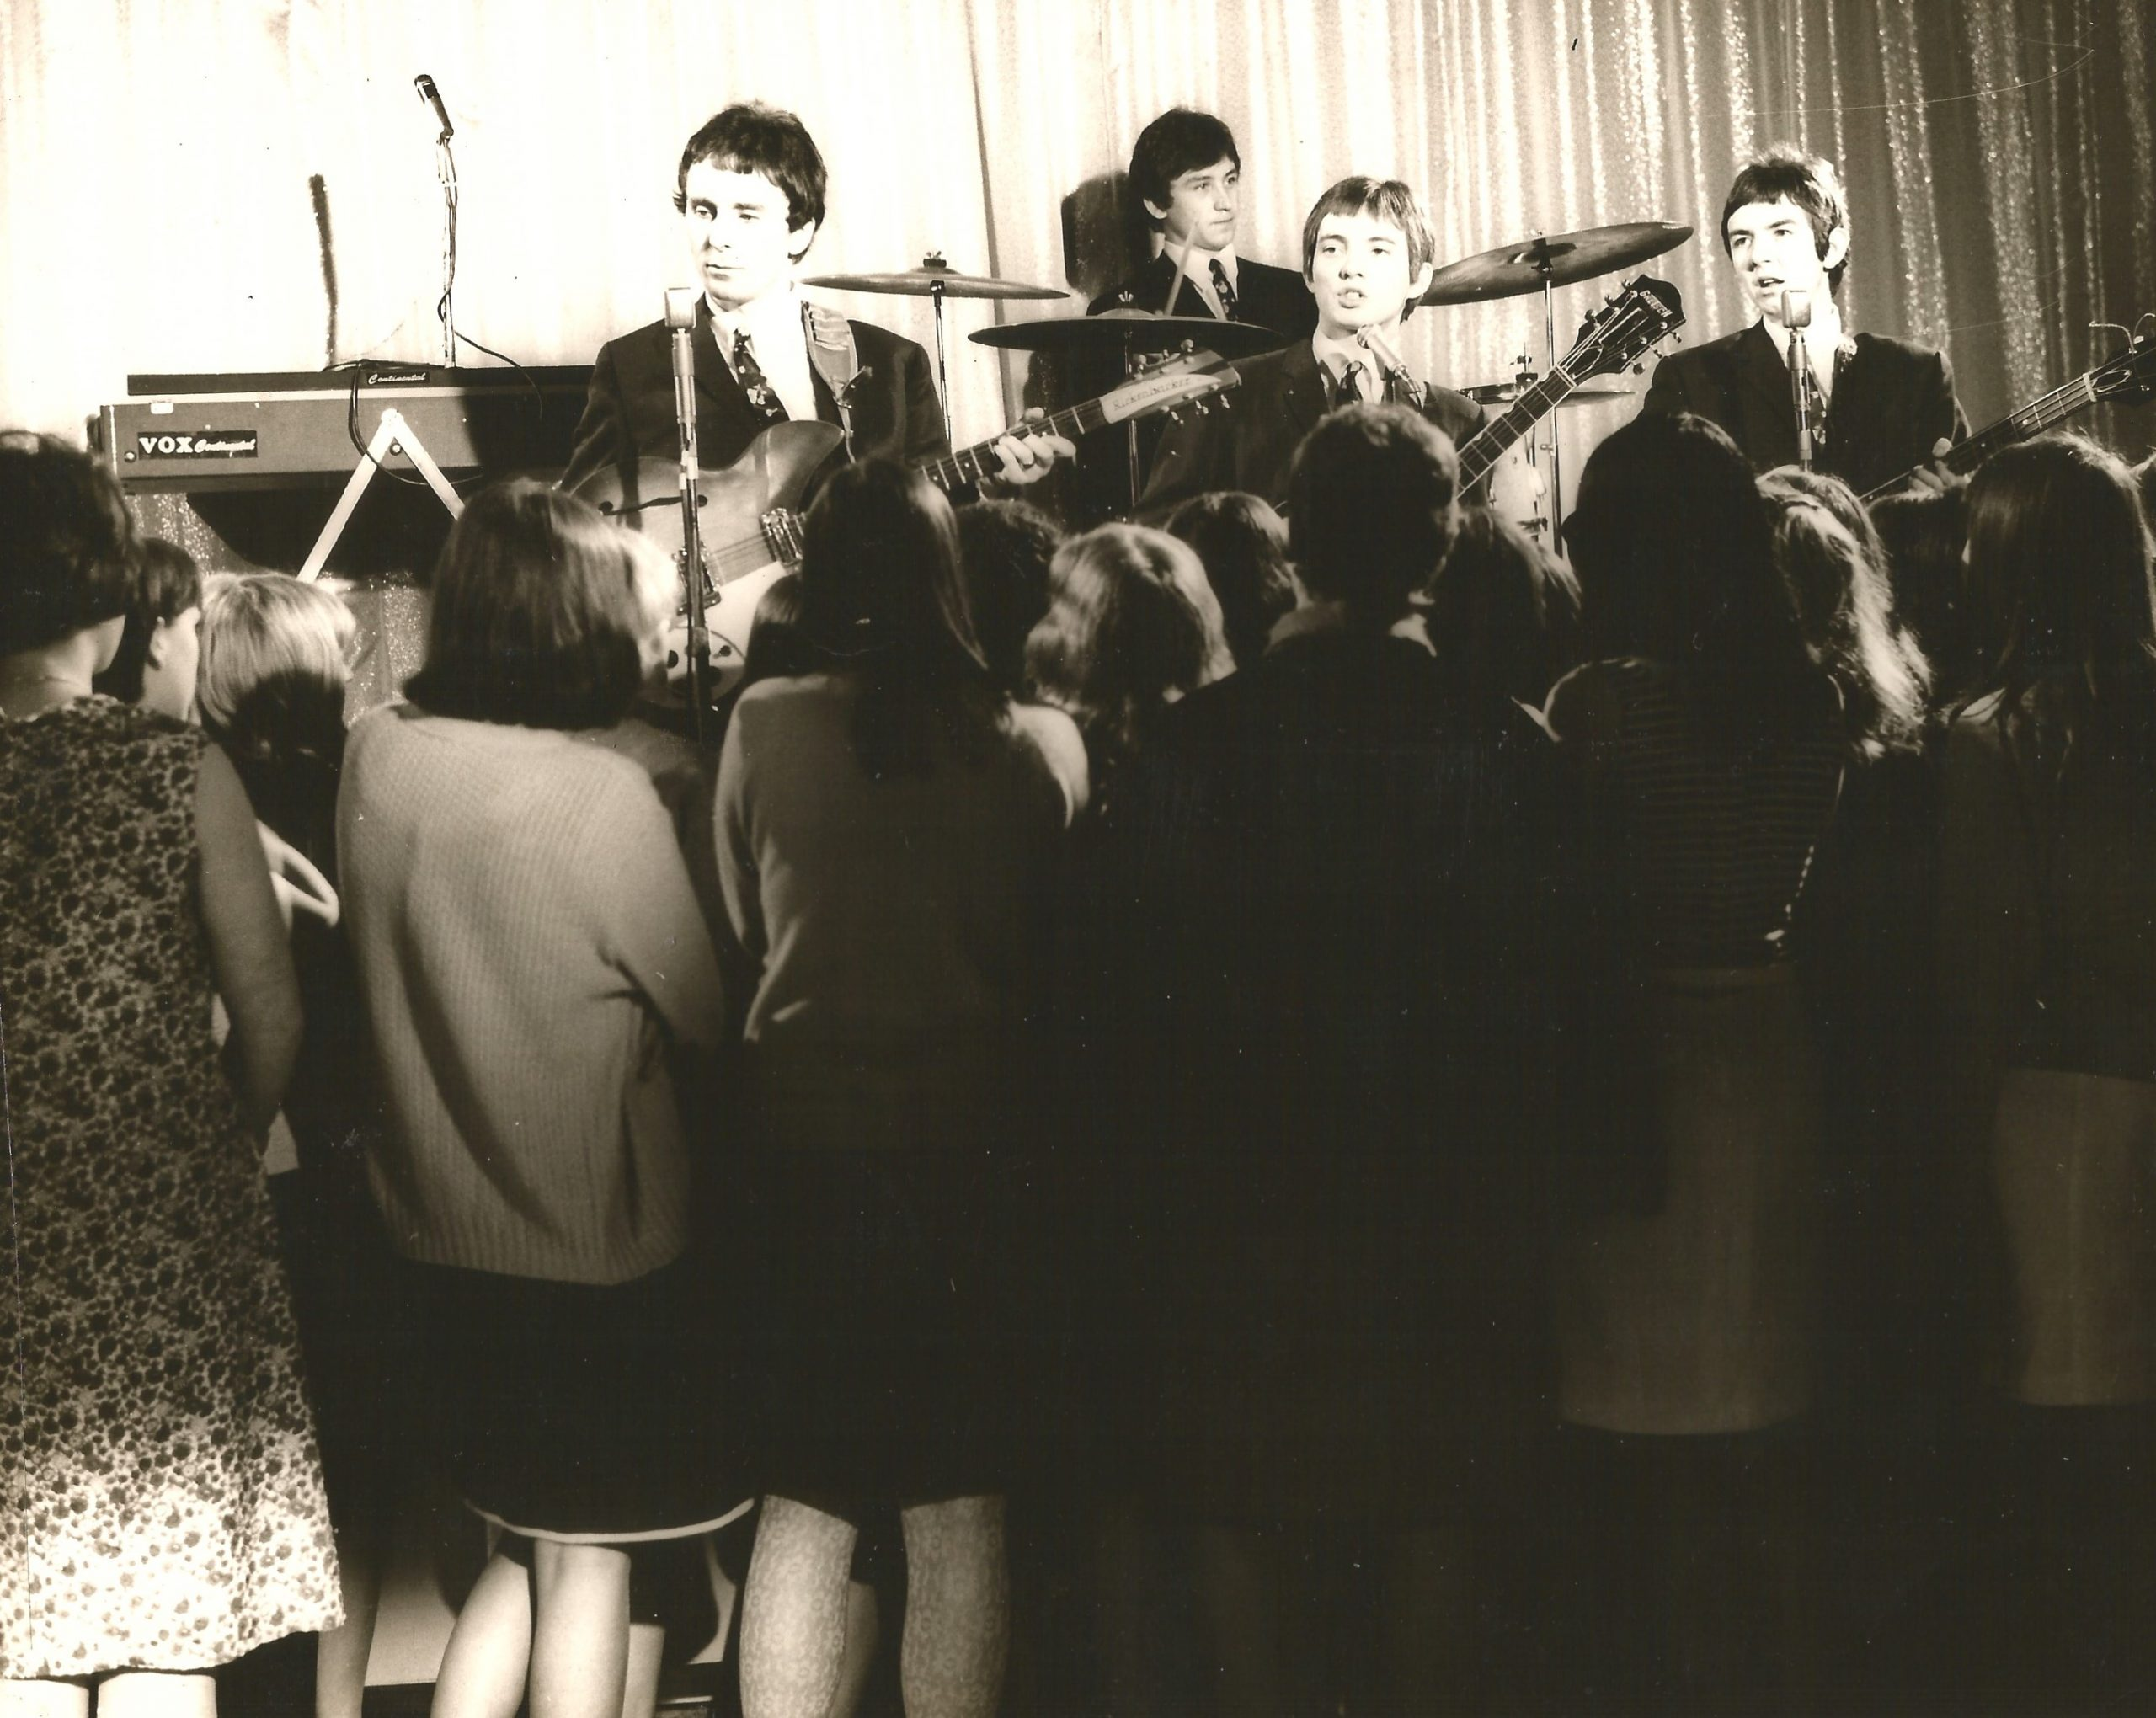 The Small Faces, including Jimmy WInston, in a still from Dateline Diamonds